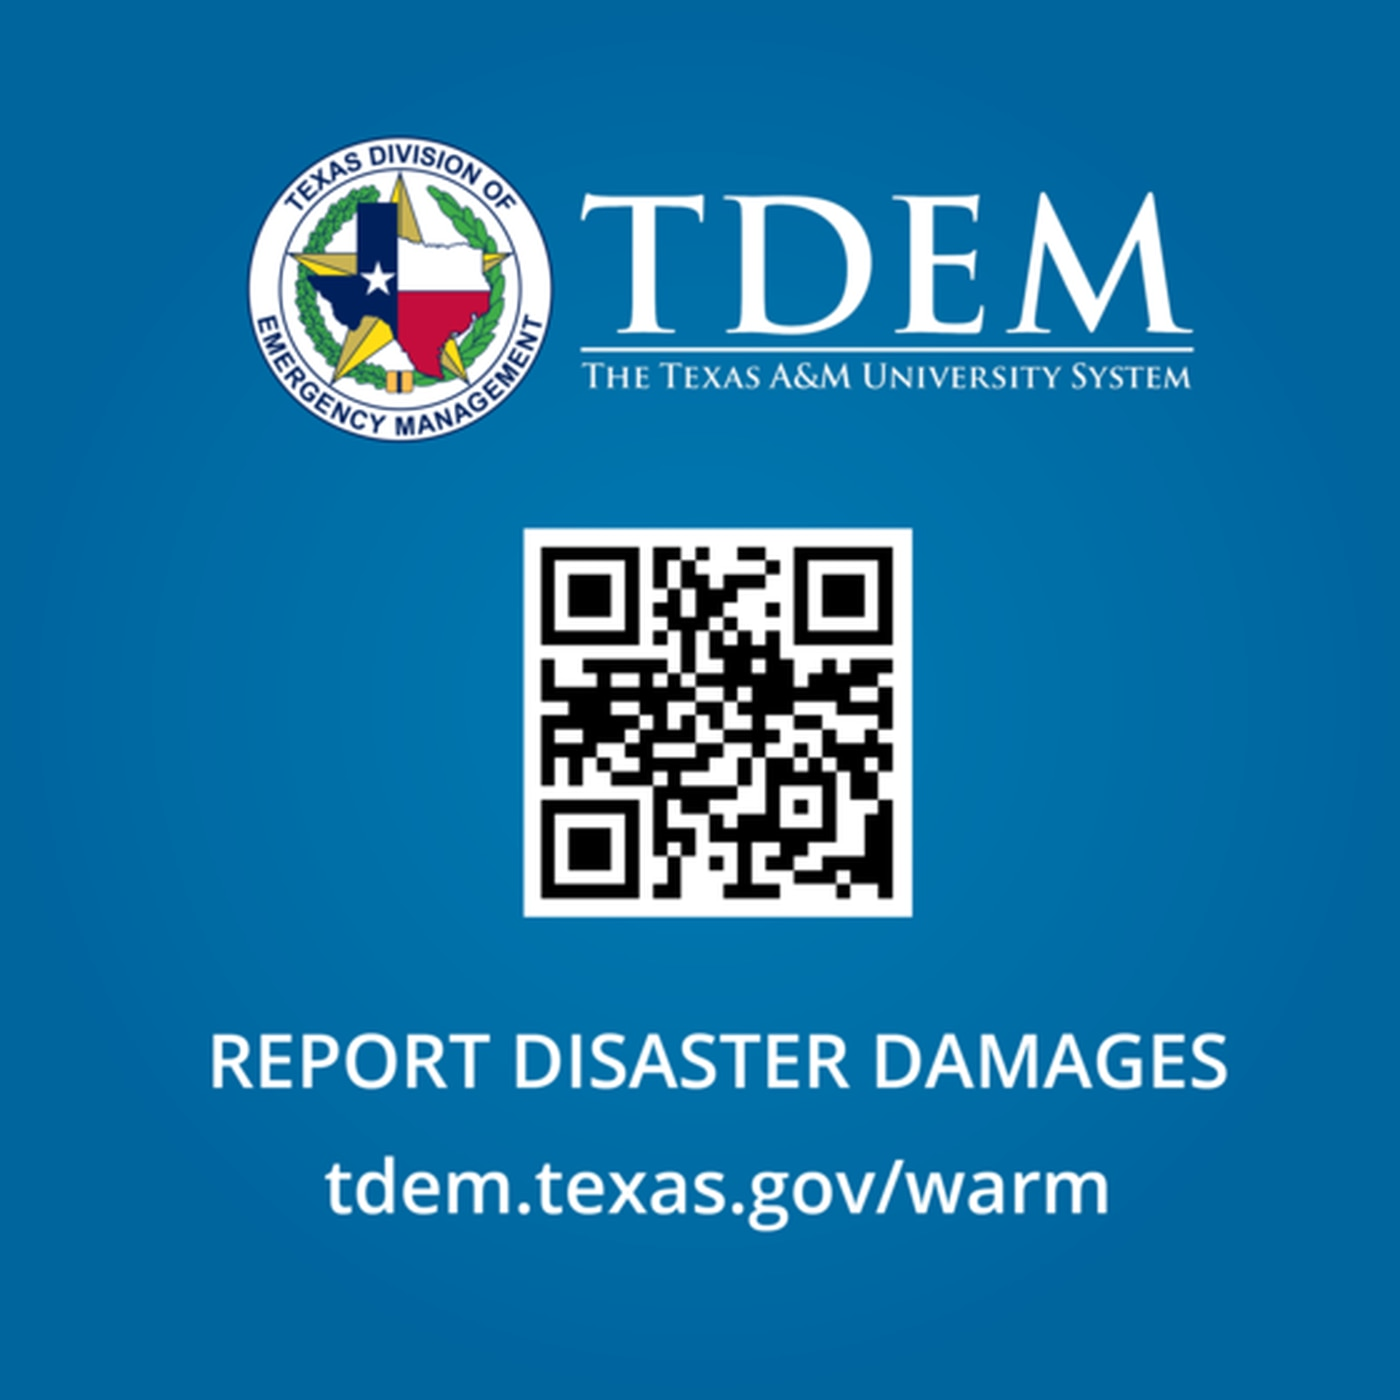 Governor Greg Abbott and the Texas Division of Emergency Management (TDEM) are encouraging Texans to complete the Self Reporting Damage Survey to help the state identify damages across Texas.